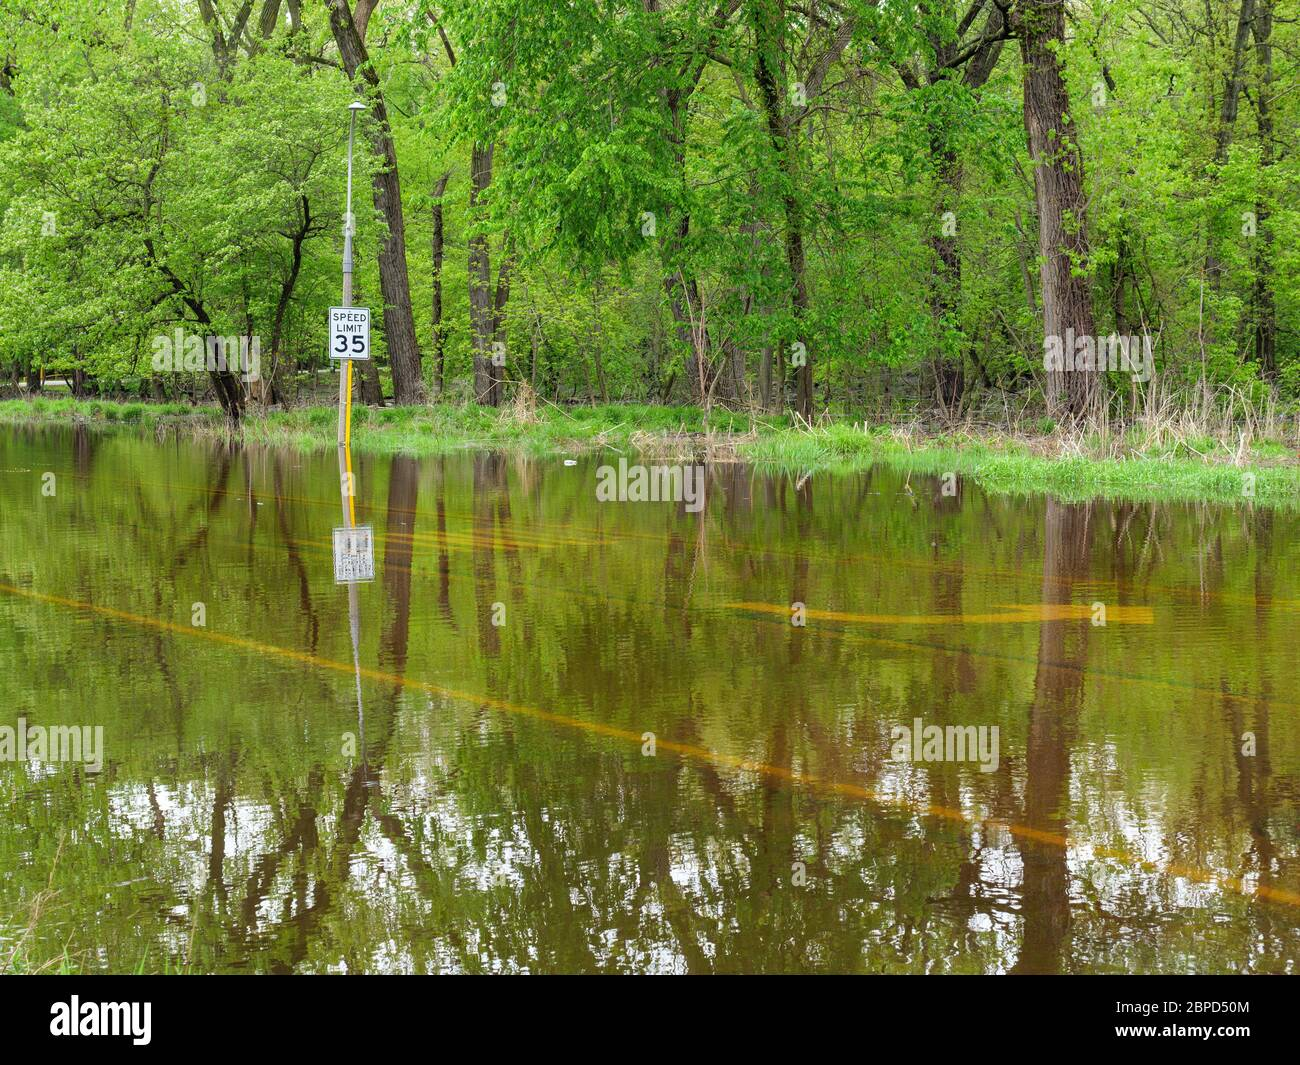 River Forest, Illinois, USA. 18th May 2020. Floodwaters from the Des Plaines River fill Chicago Avenue where it passes through Thatcher Woods Forest Preserve. Stock Photo